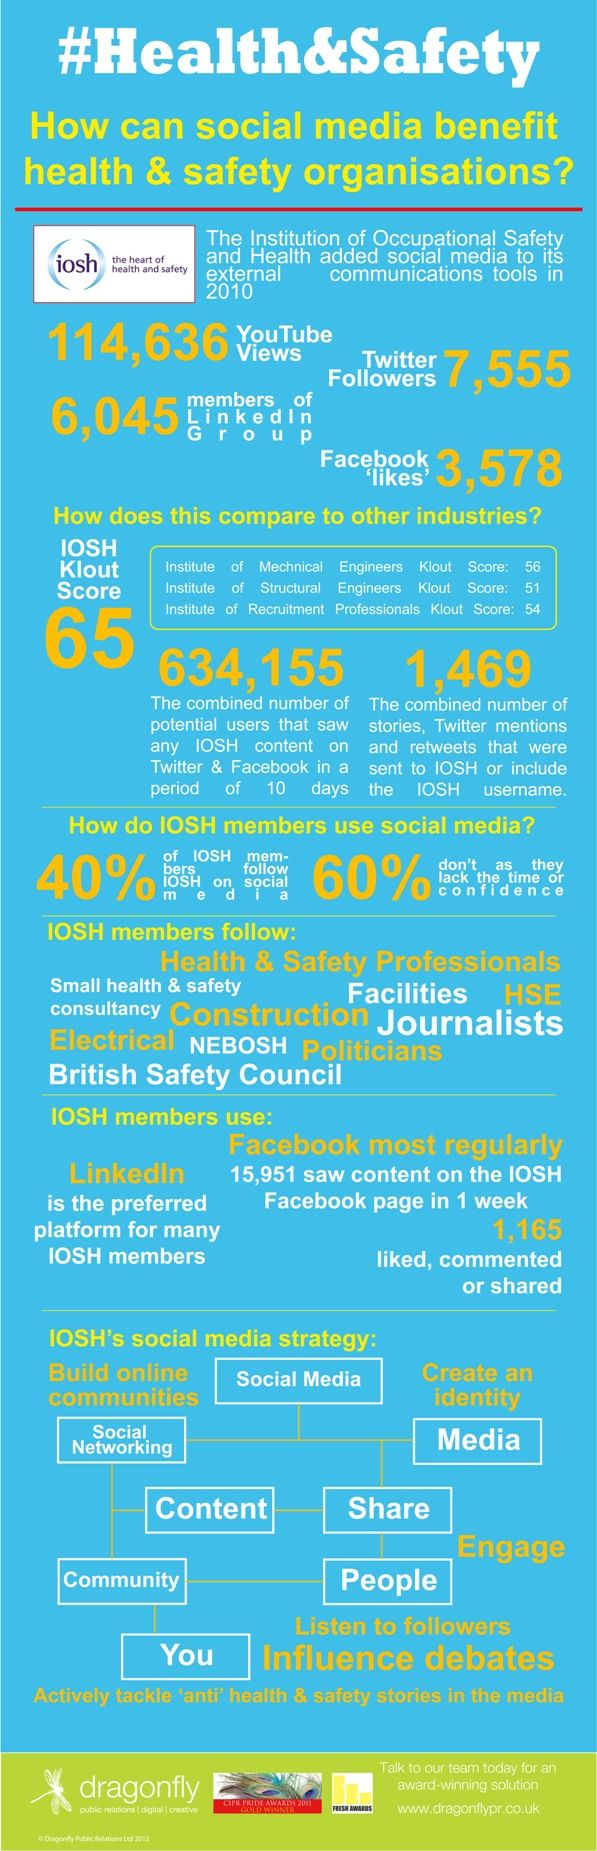 How can social media benefit health & safety organisations